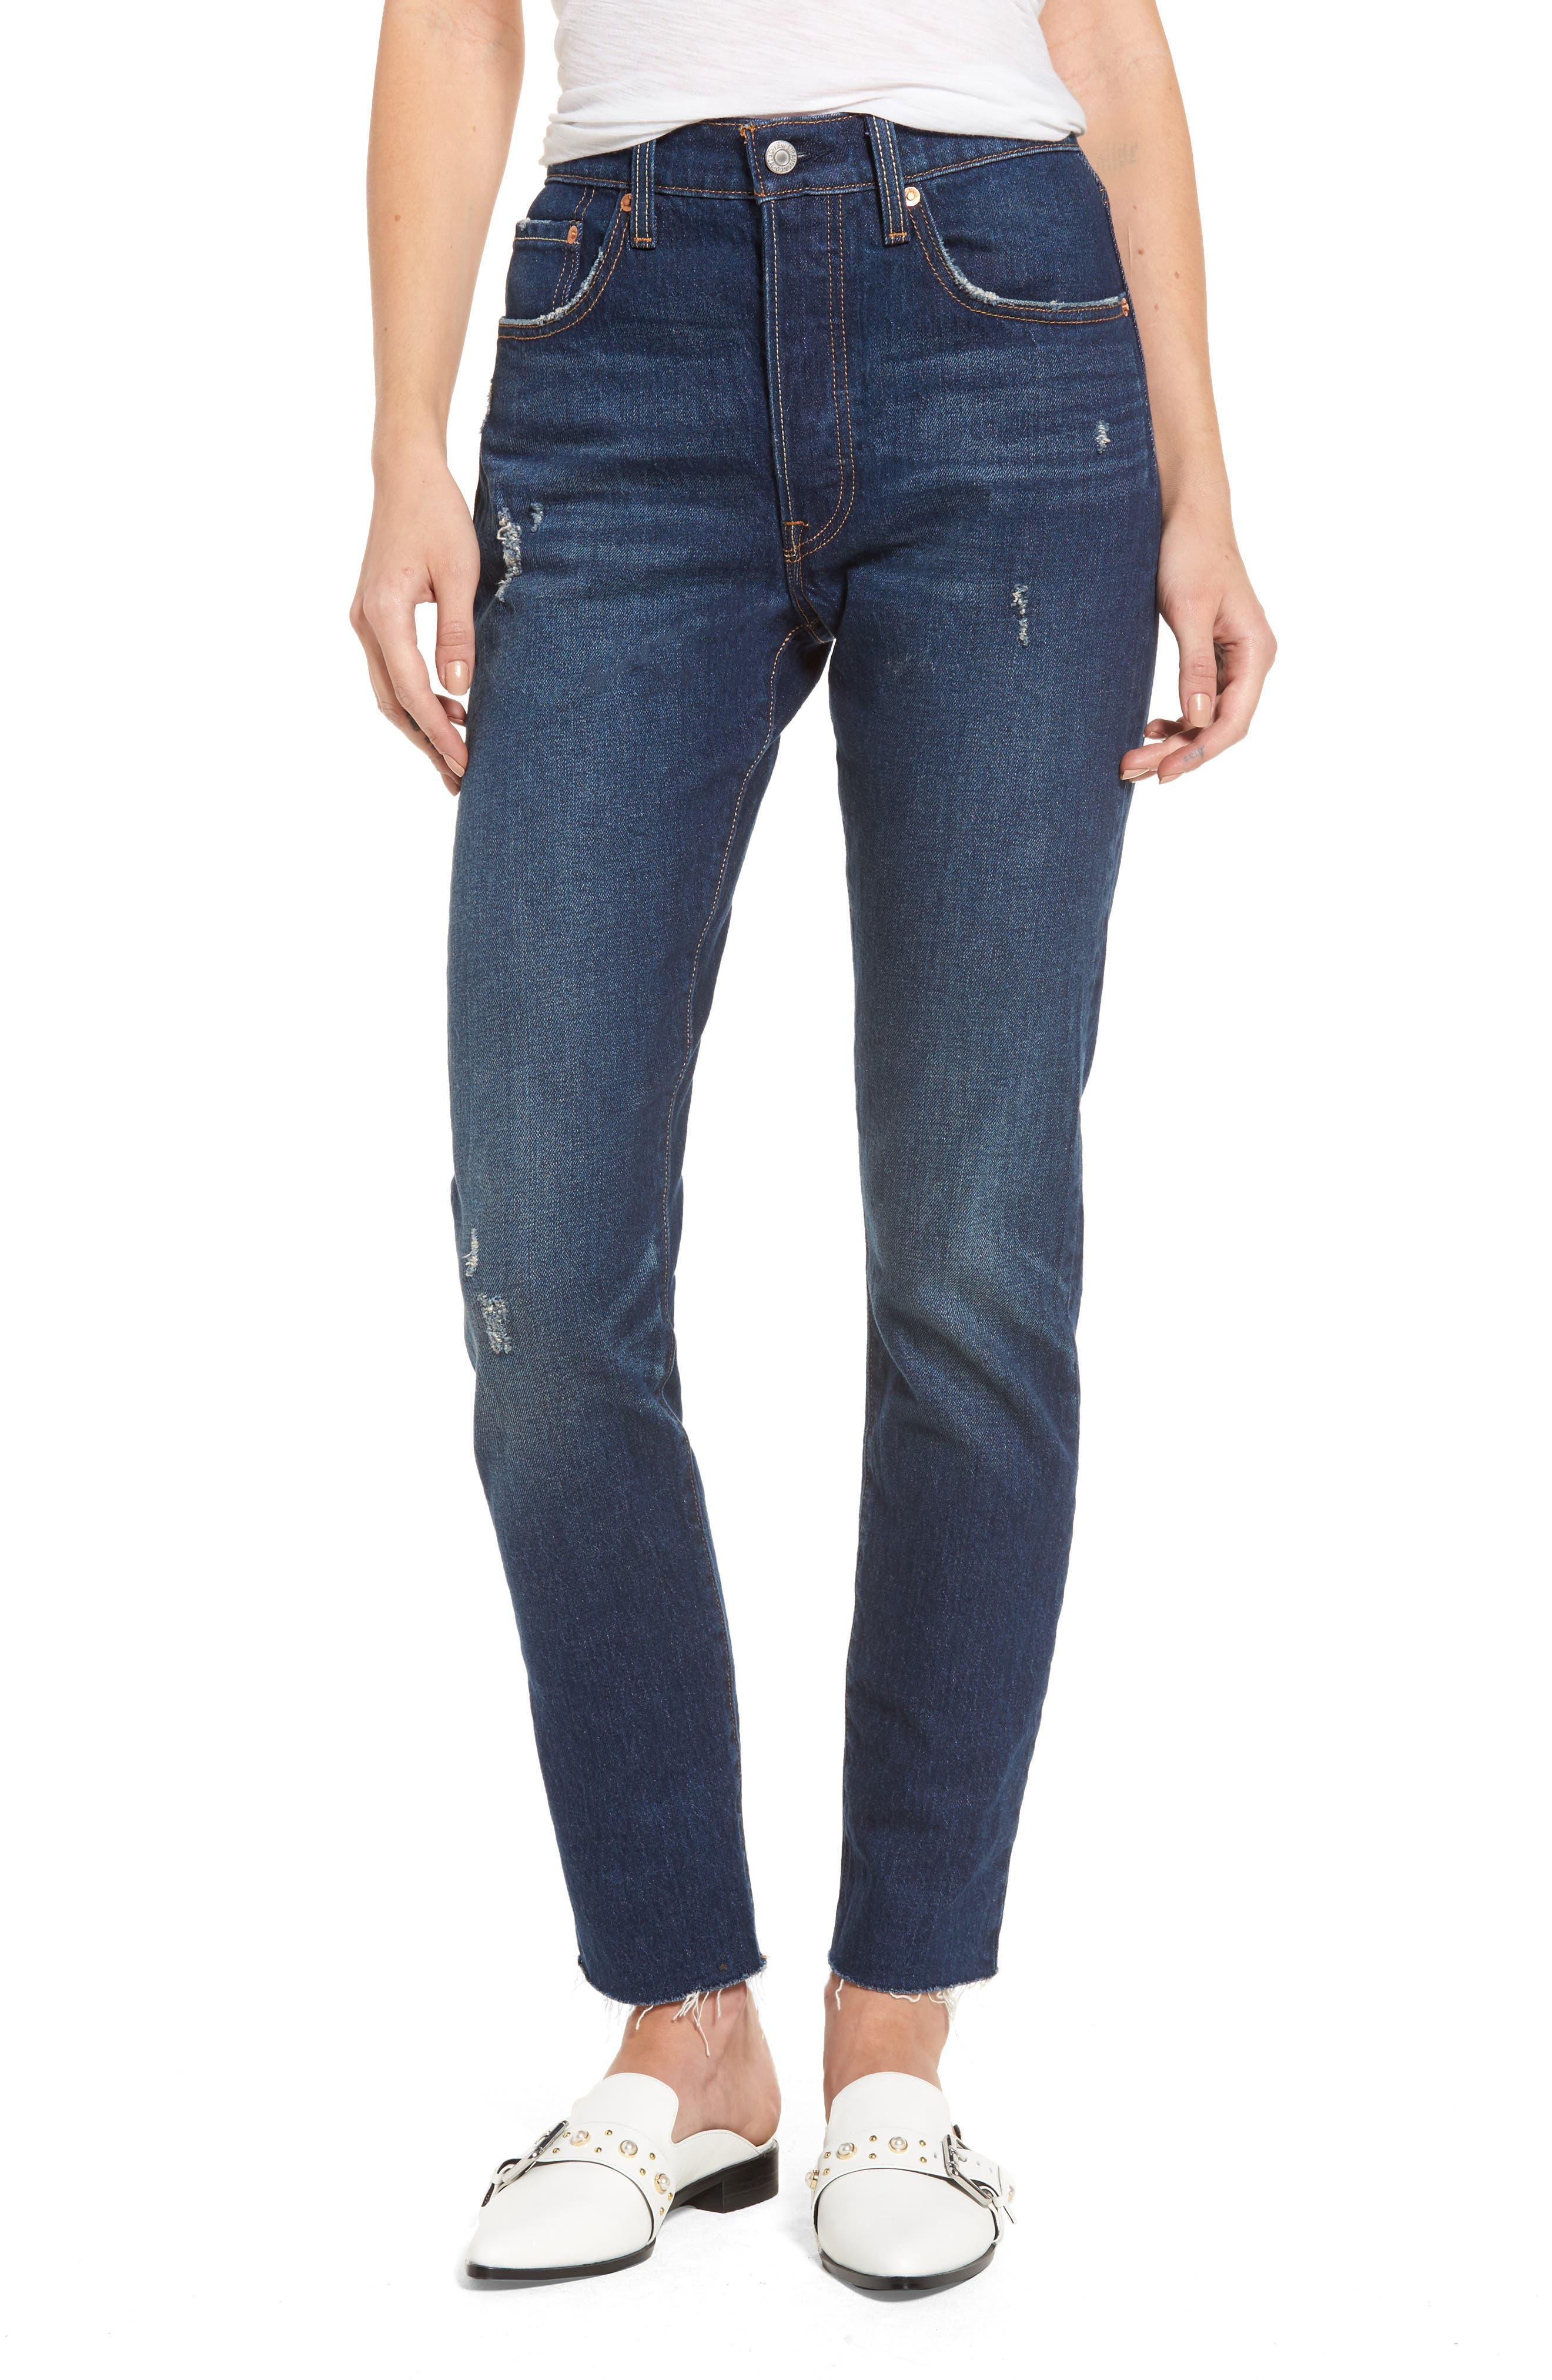 Levis<sup>®</sup> 501 Raw Hem Skinny Jeans,                             Main thumbnail 1, color,                             Song For Forever